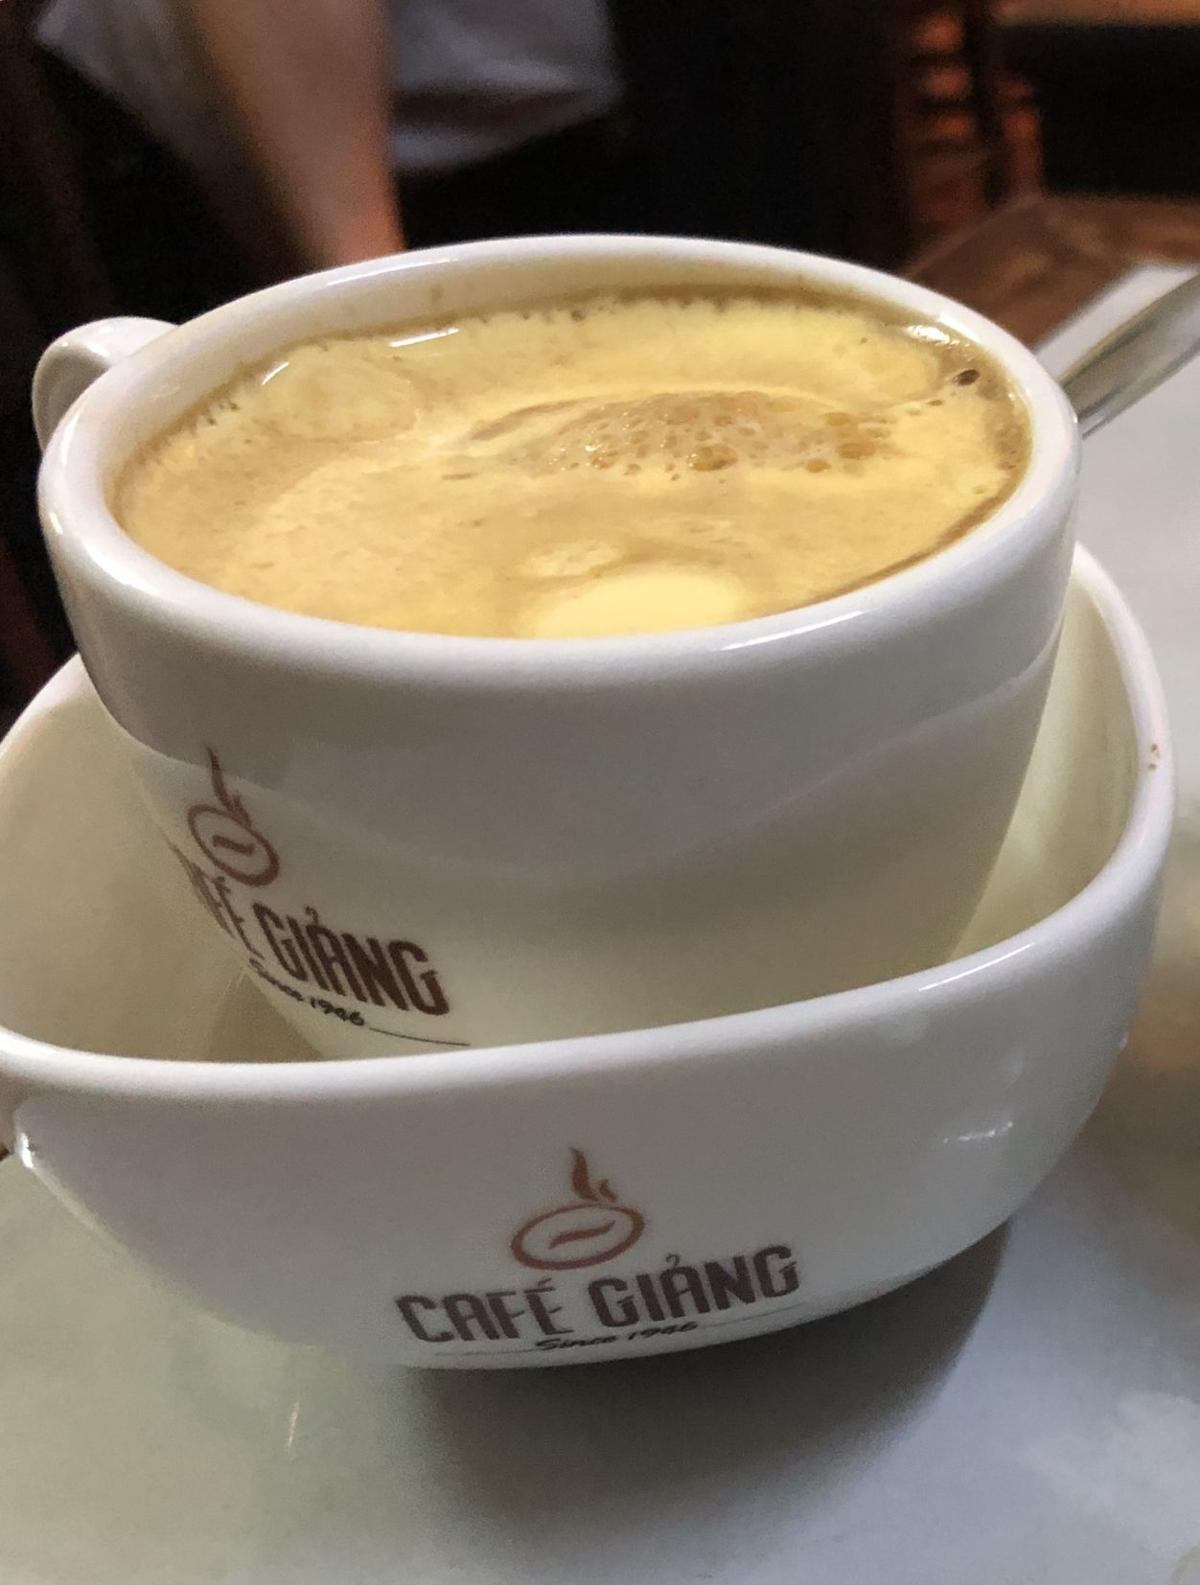 Hanio's signature egg coffee a unique taste experience on foodie tor in Vietnam